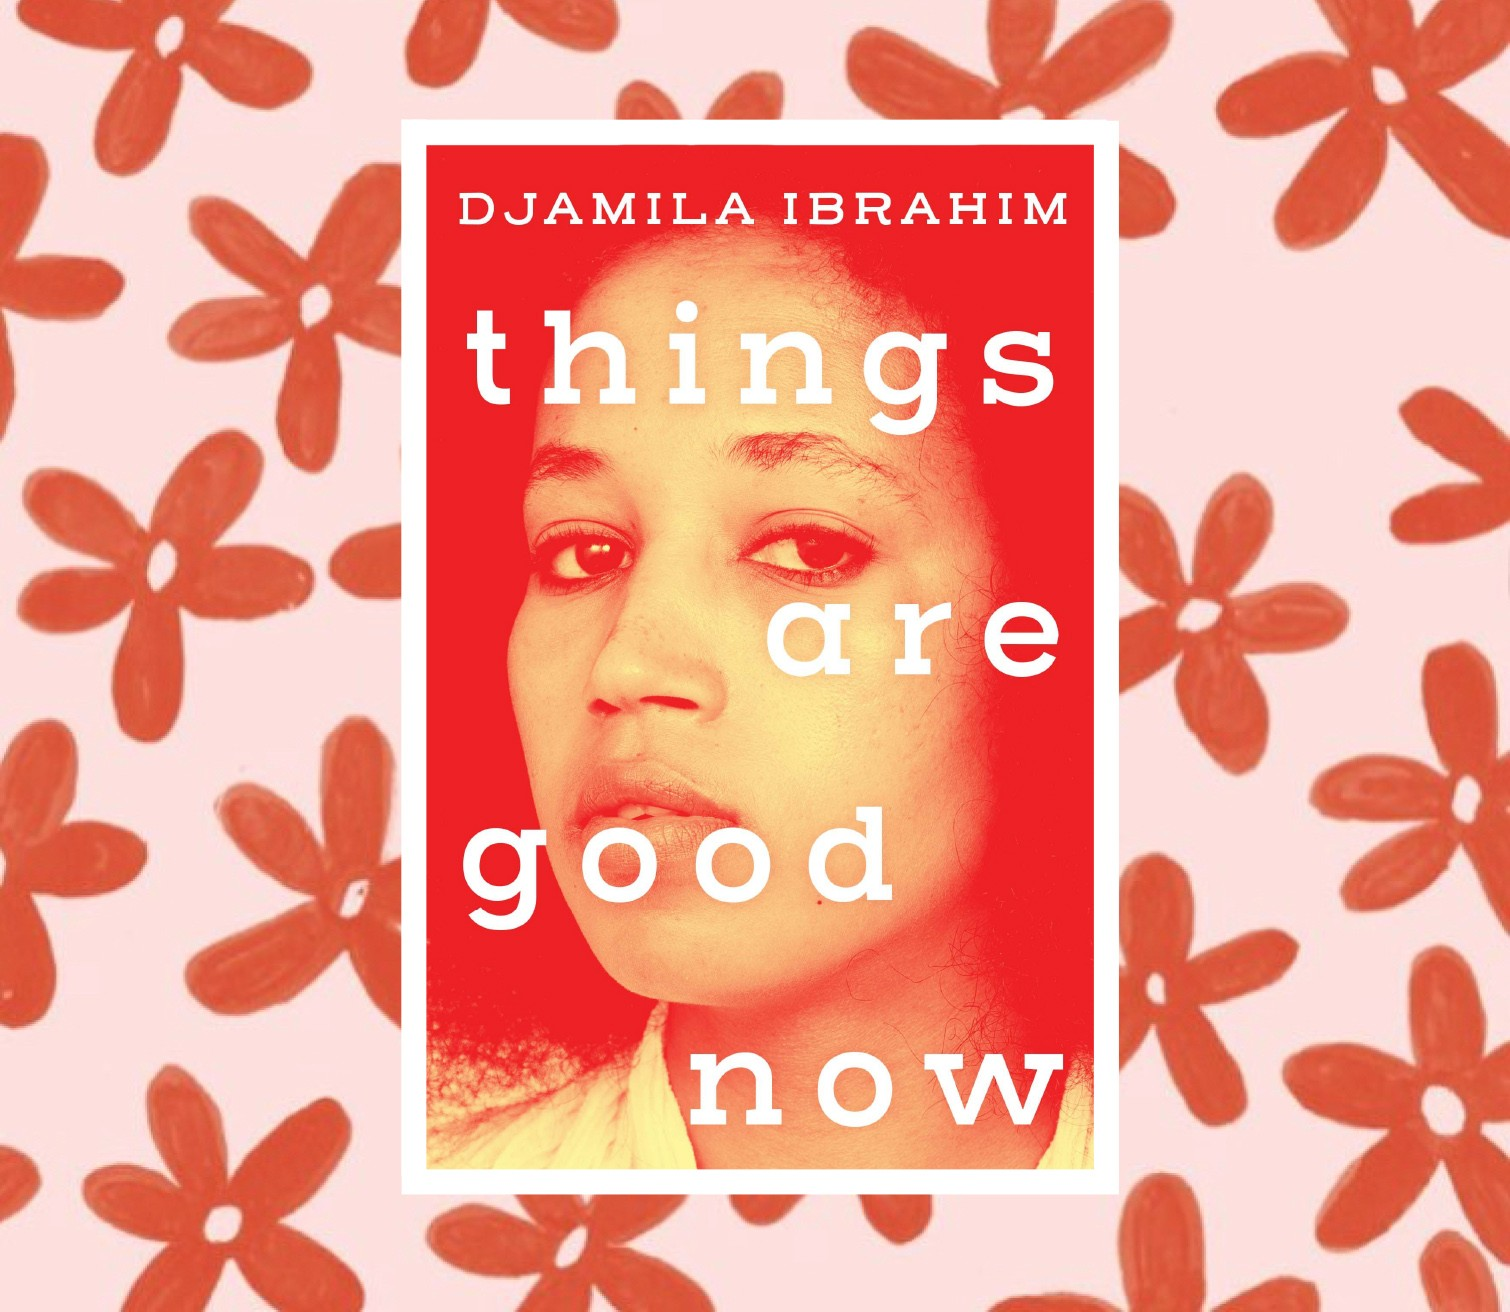 Things are Good Now Djamila Ibrahim - Short Stories By Women Toronto 2018 Edit Seven